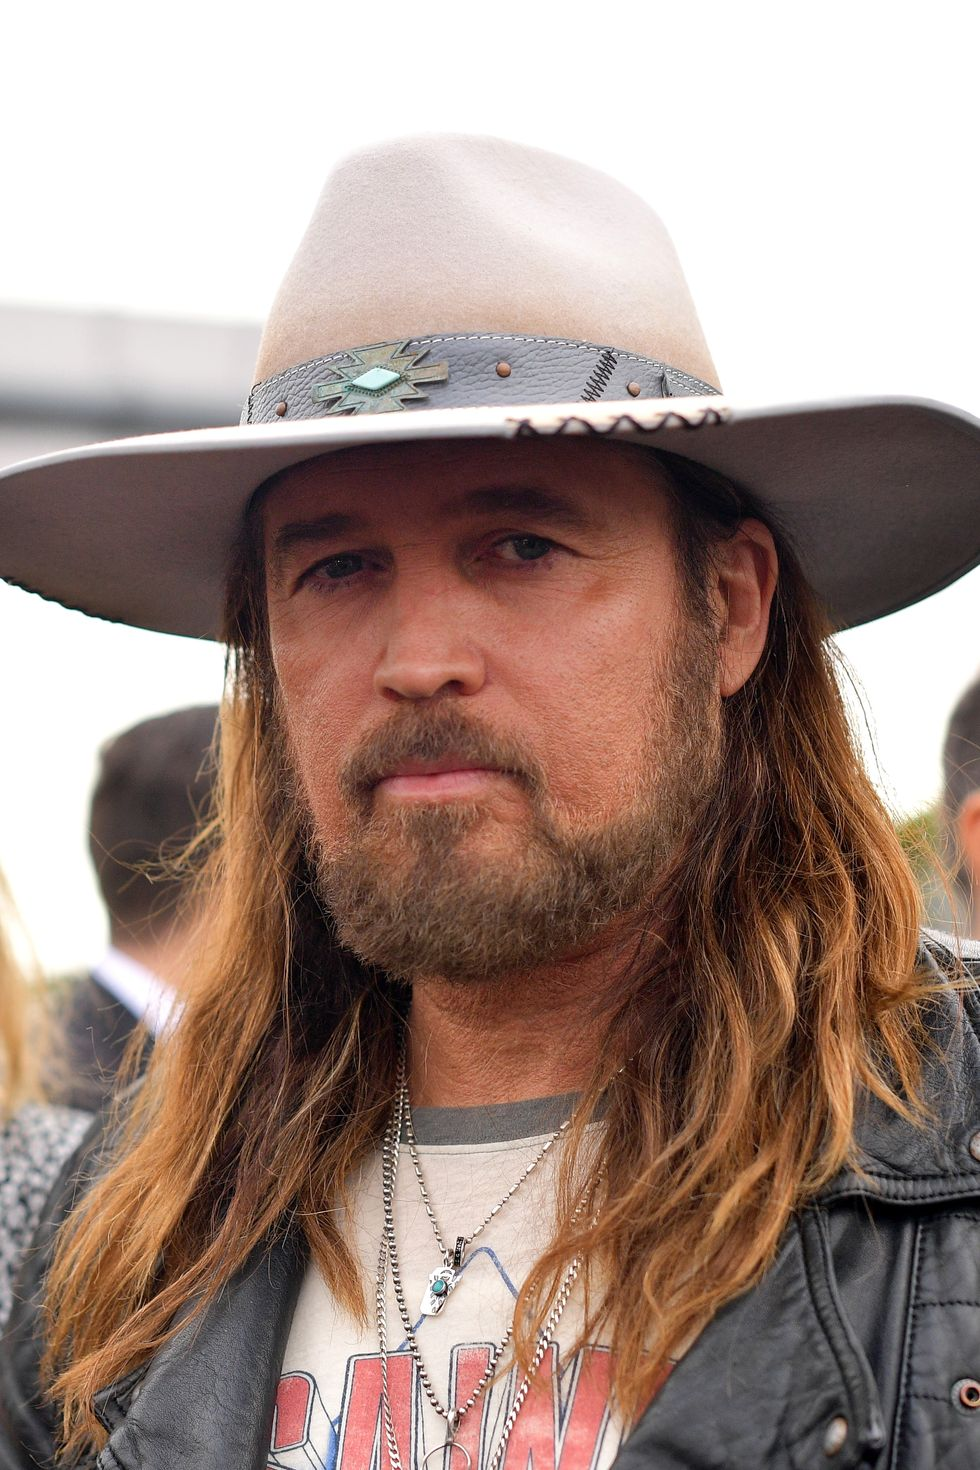 Billy Ray Cyrus, father of Miley Cyrus